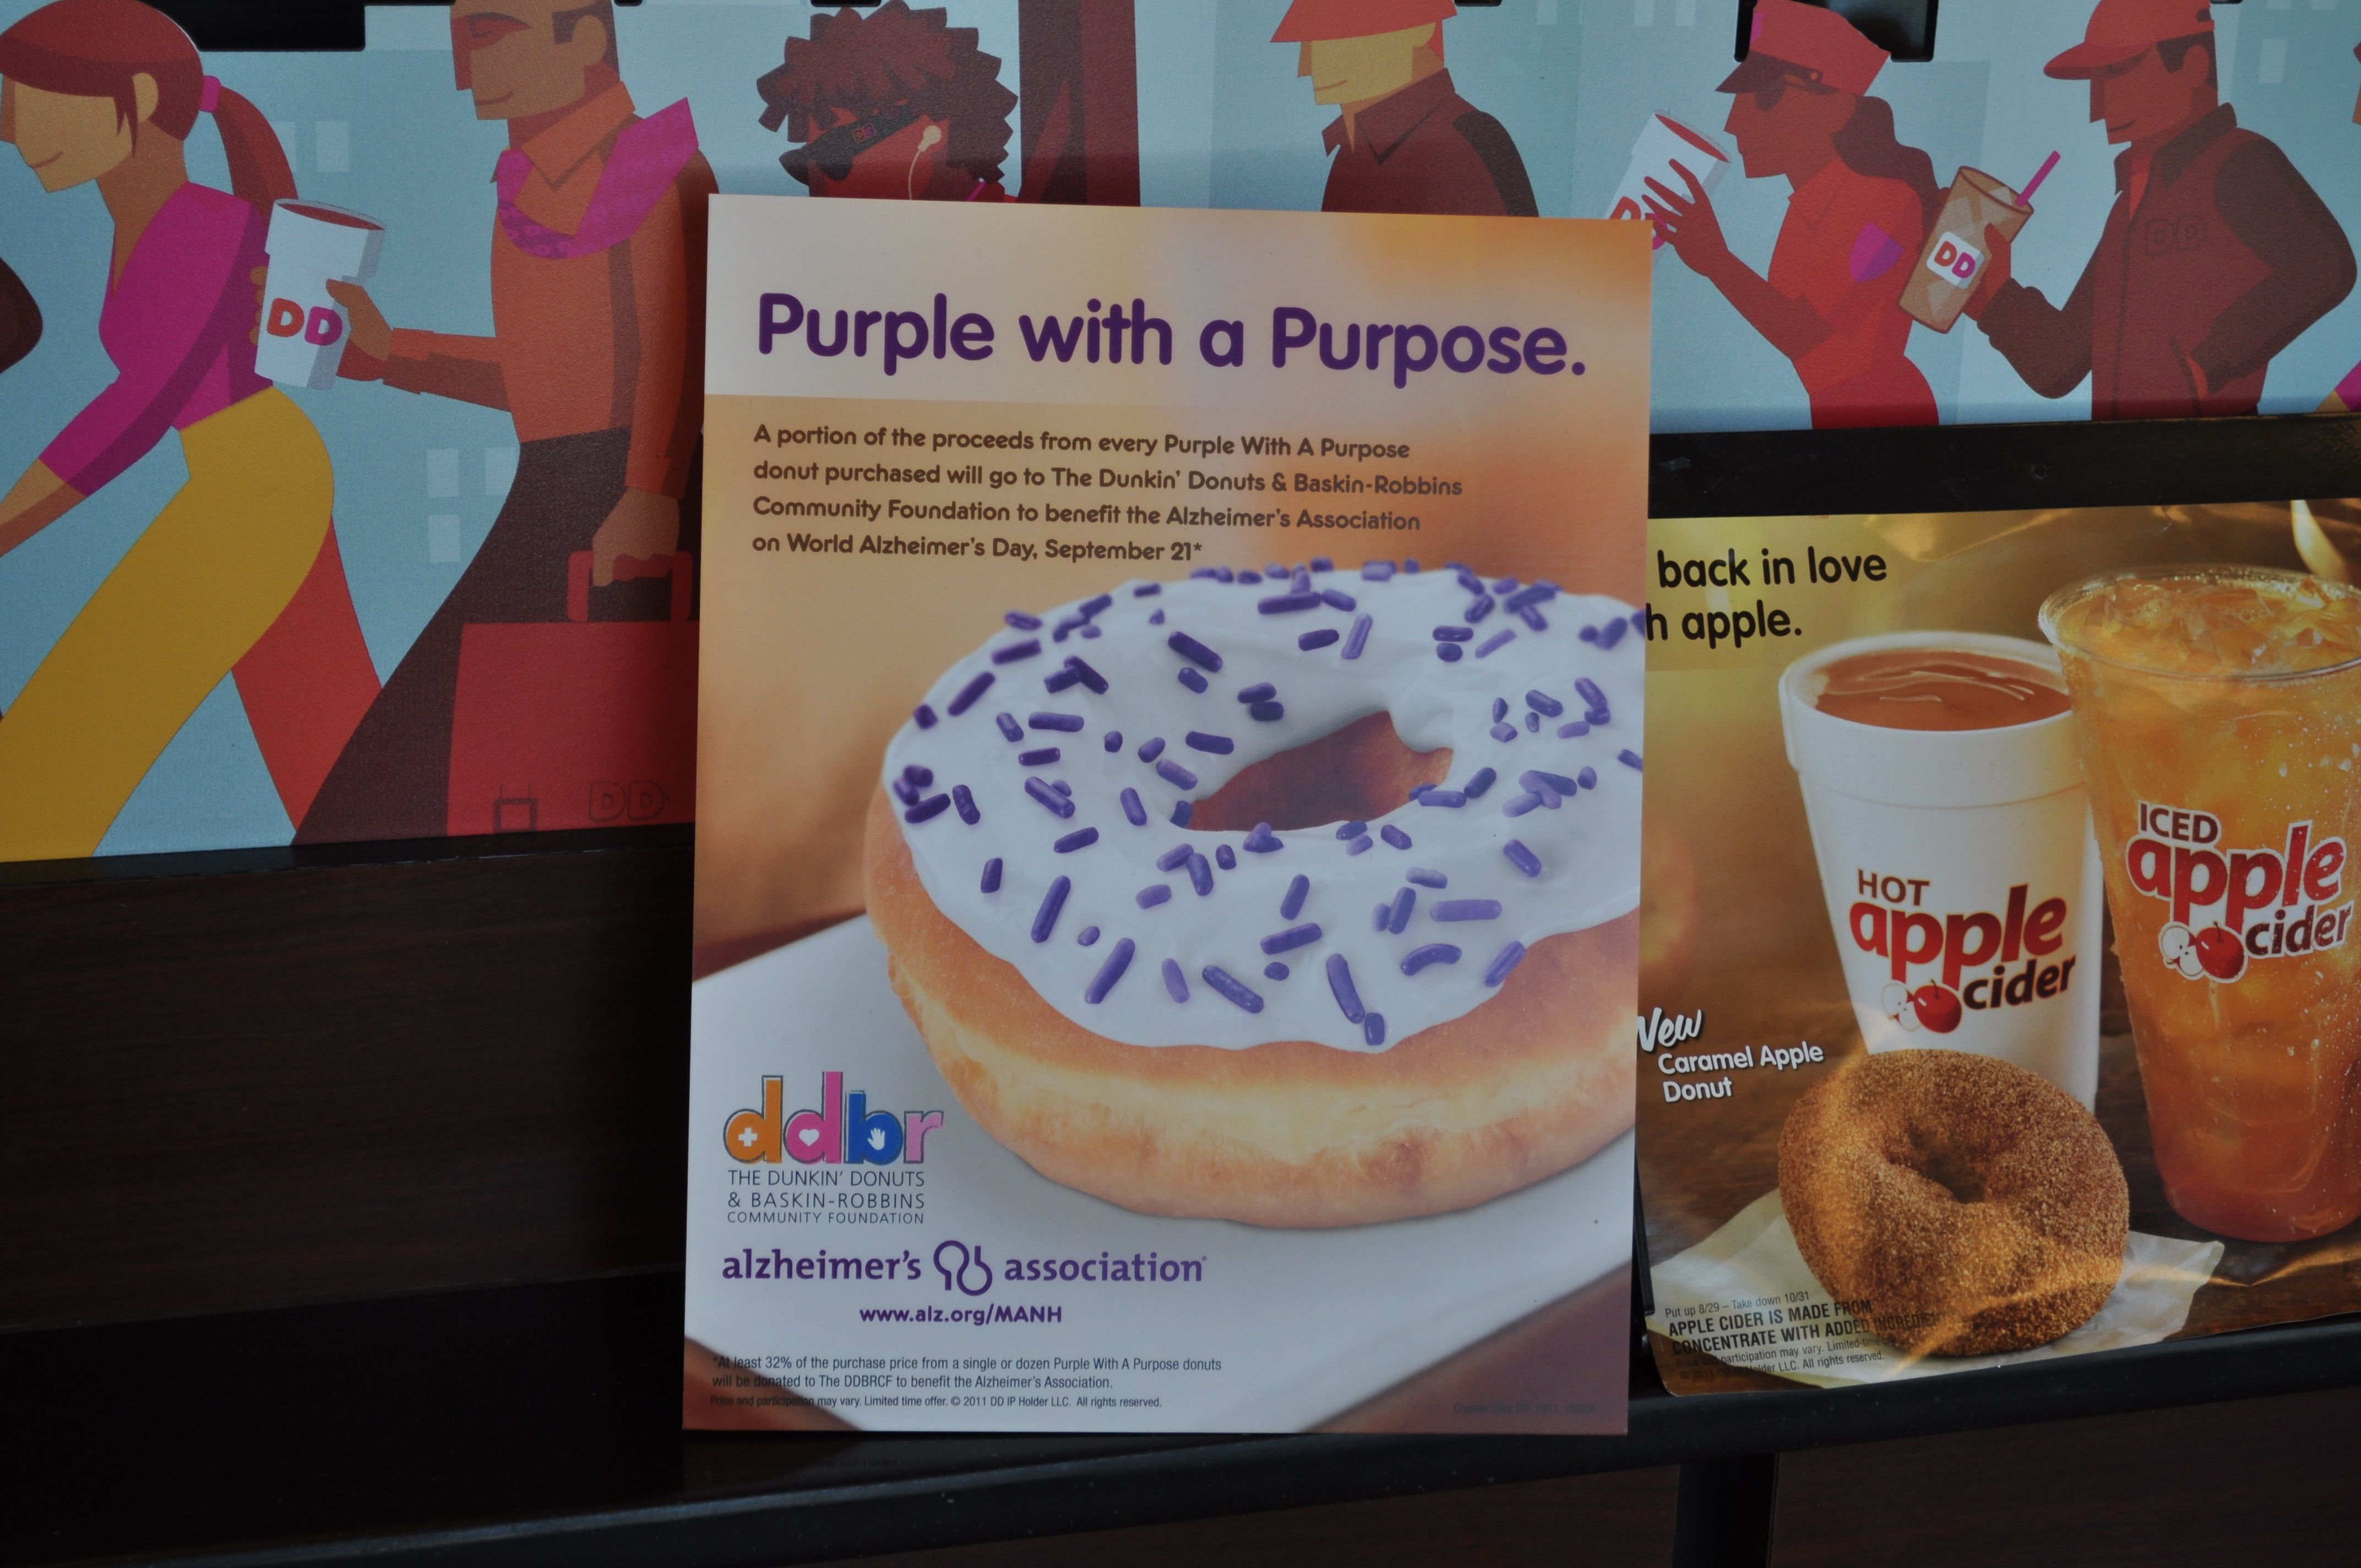 Dunkins purple with a purpose donuts with images